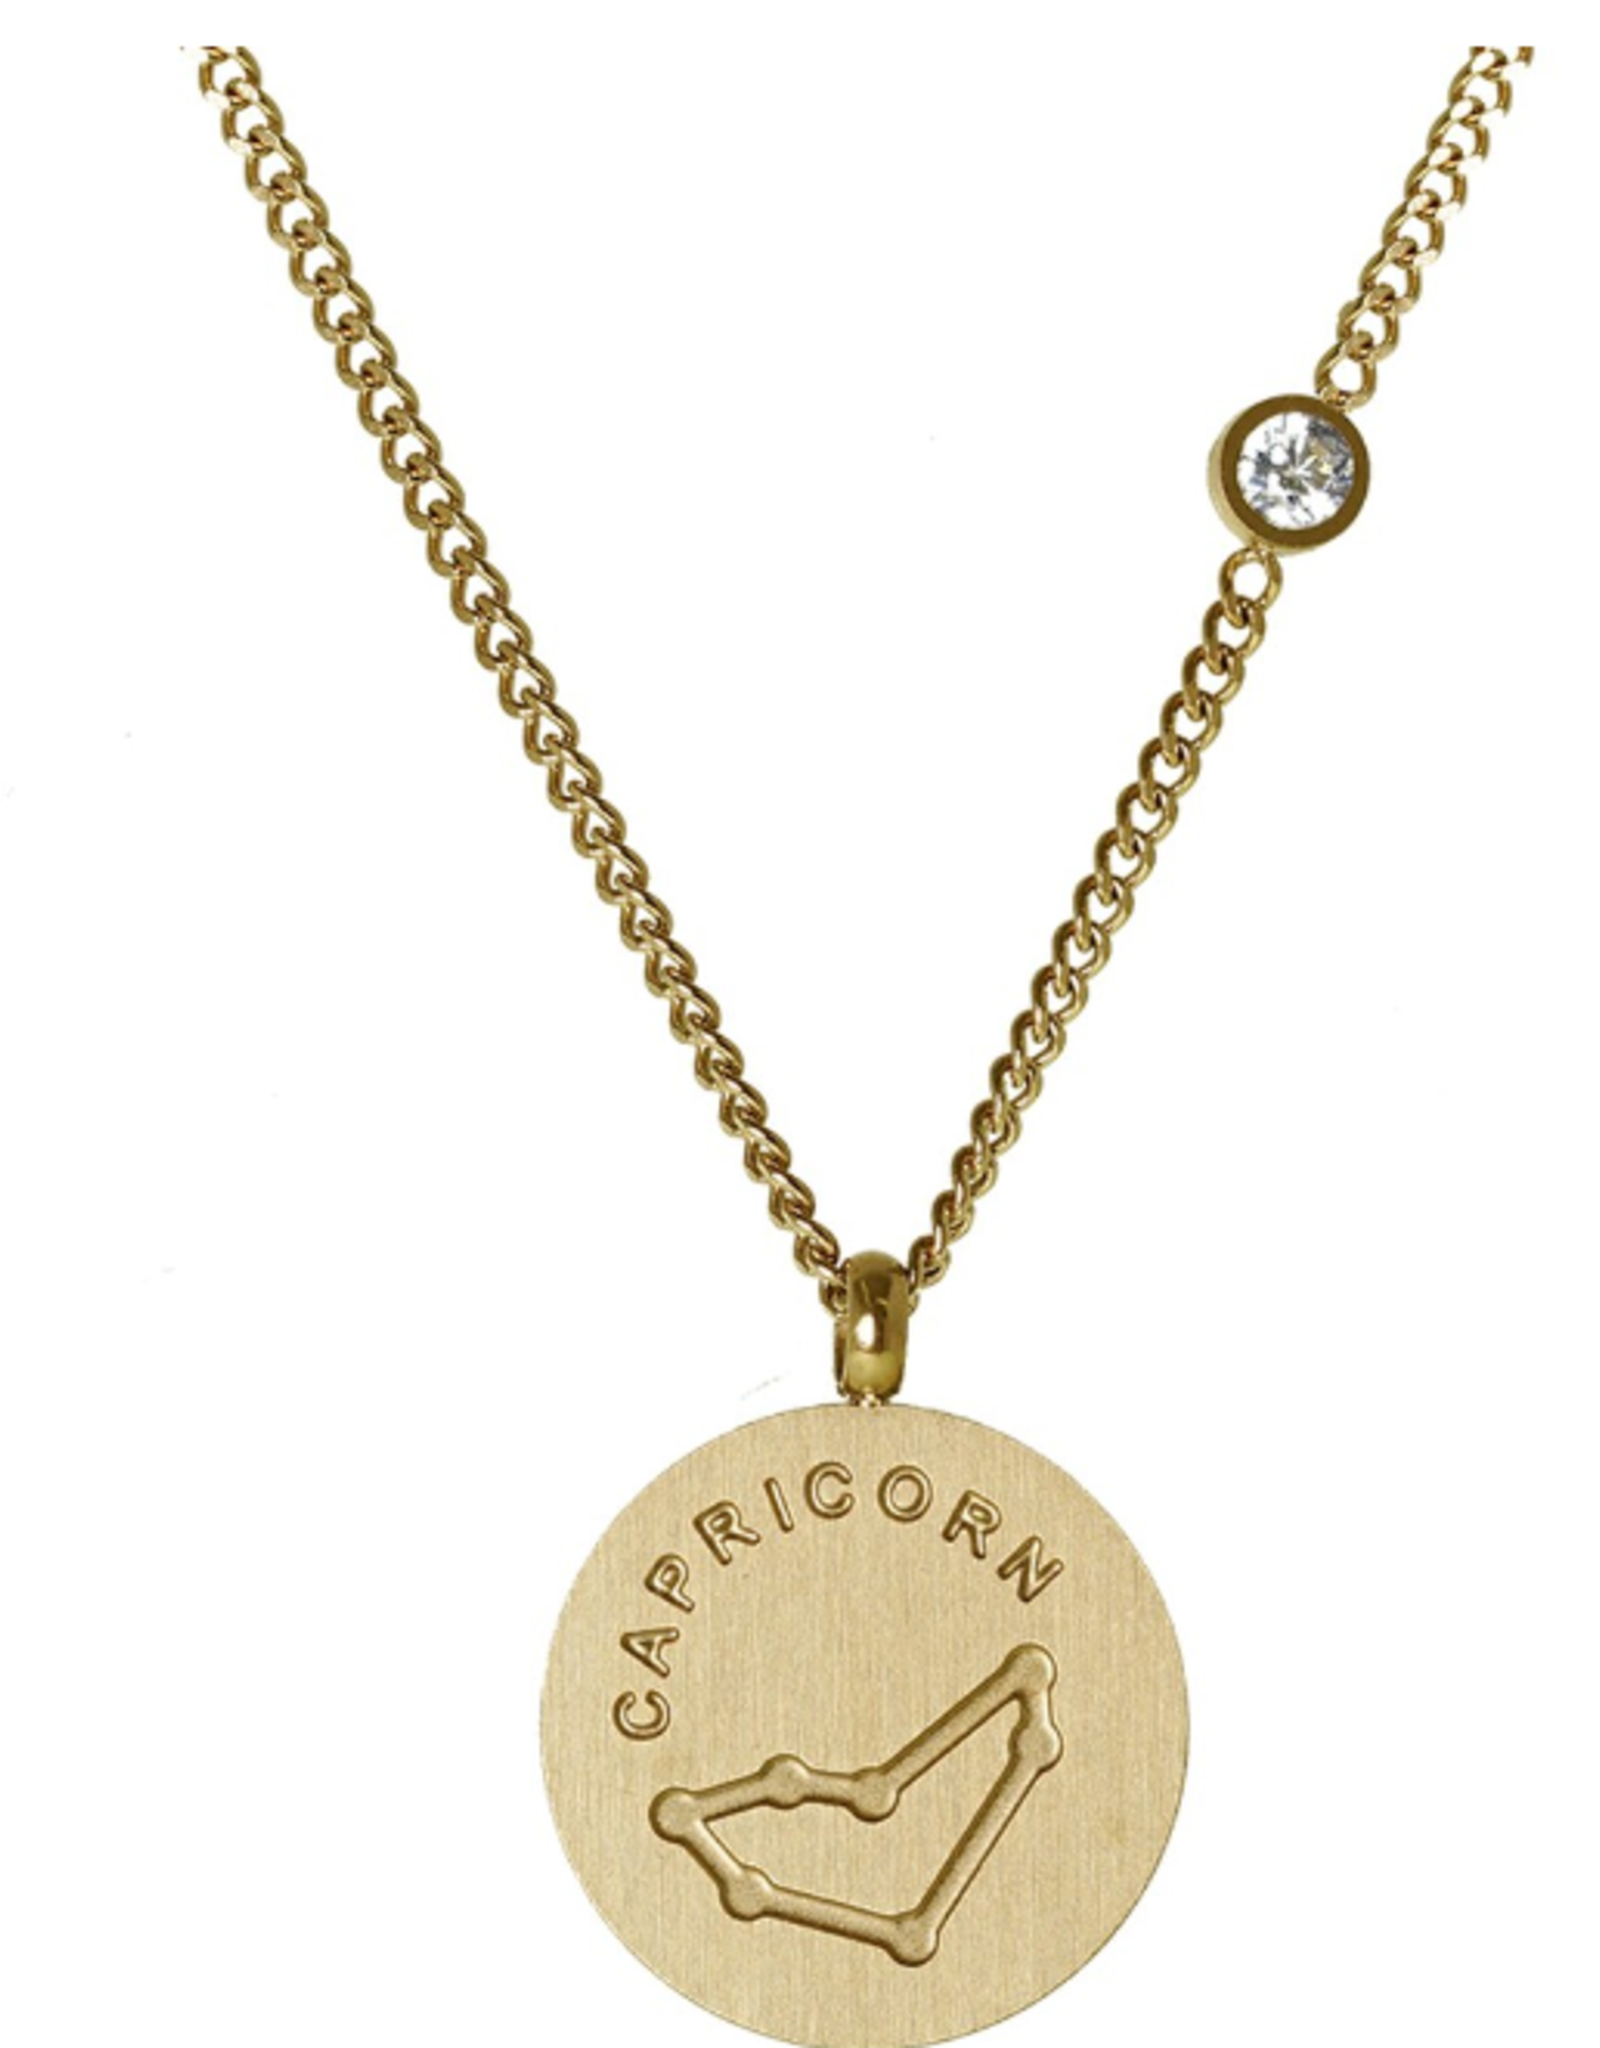 Gold Capricorn Necklace